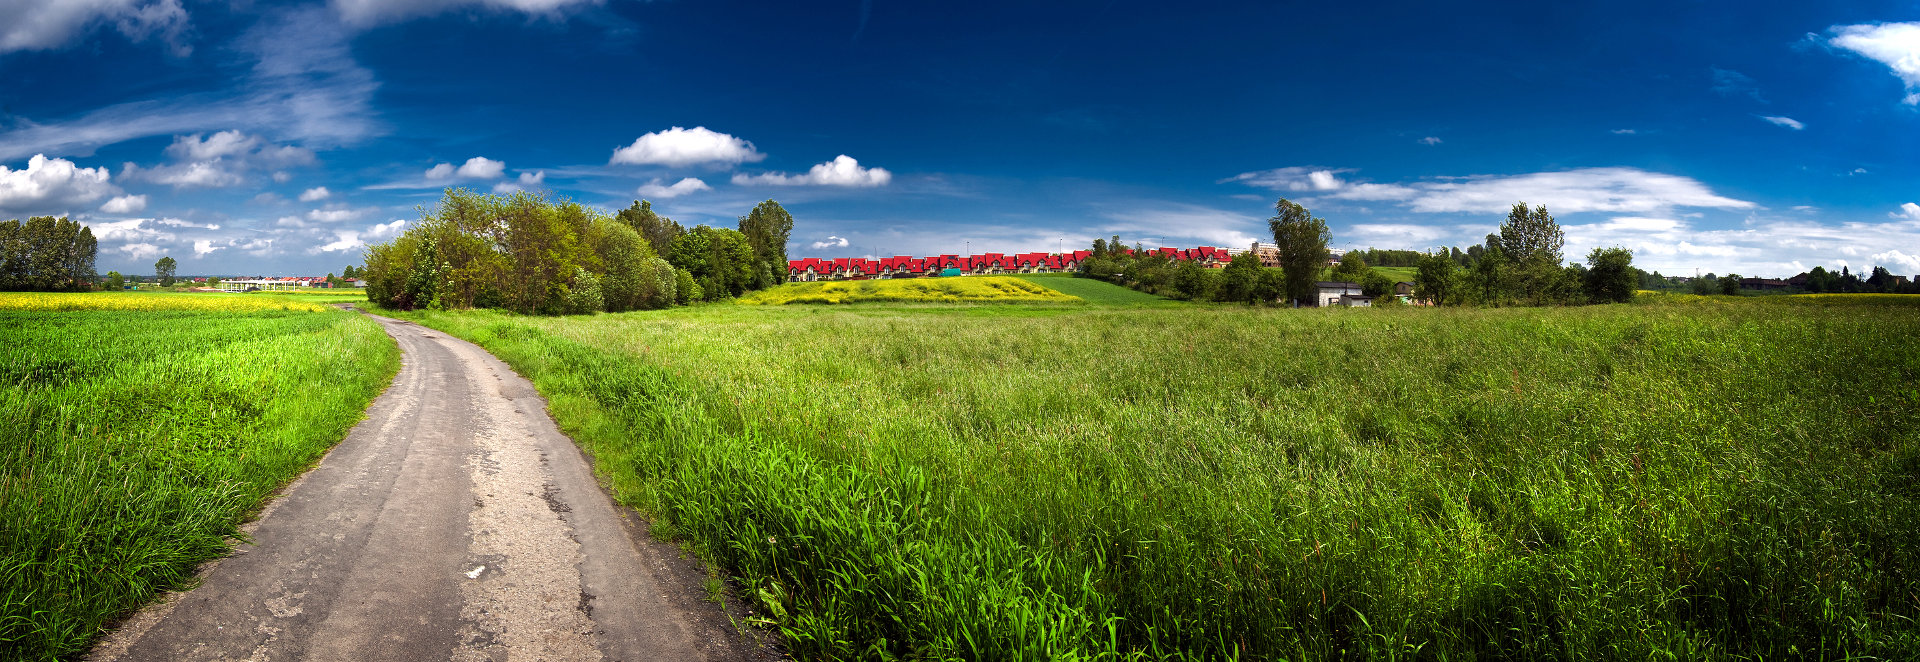 GREEN FIELD WITH BLUE SKY ABOVE PANORAMA © Paweł Sajdyk | Dreamstime.com